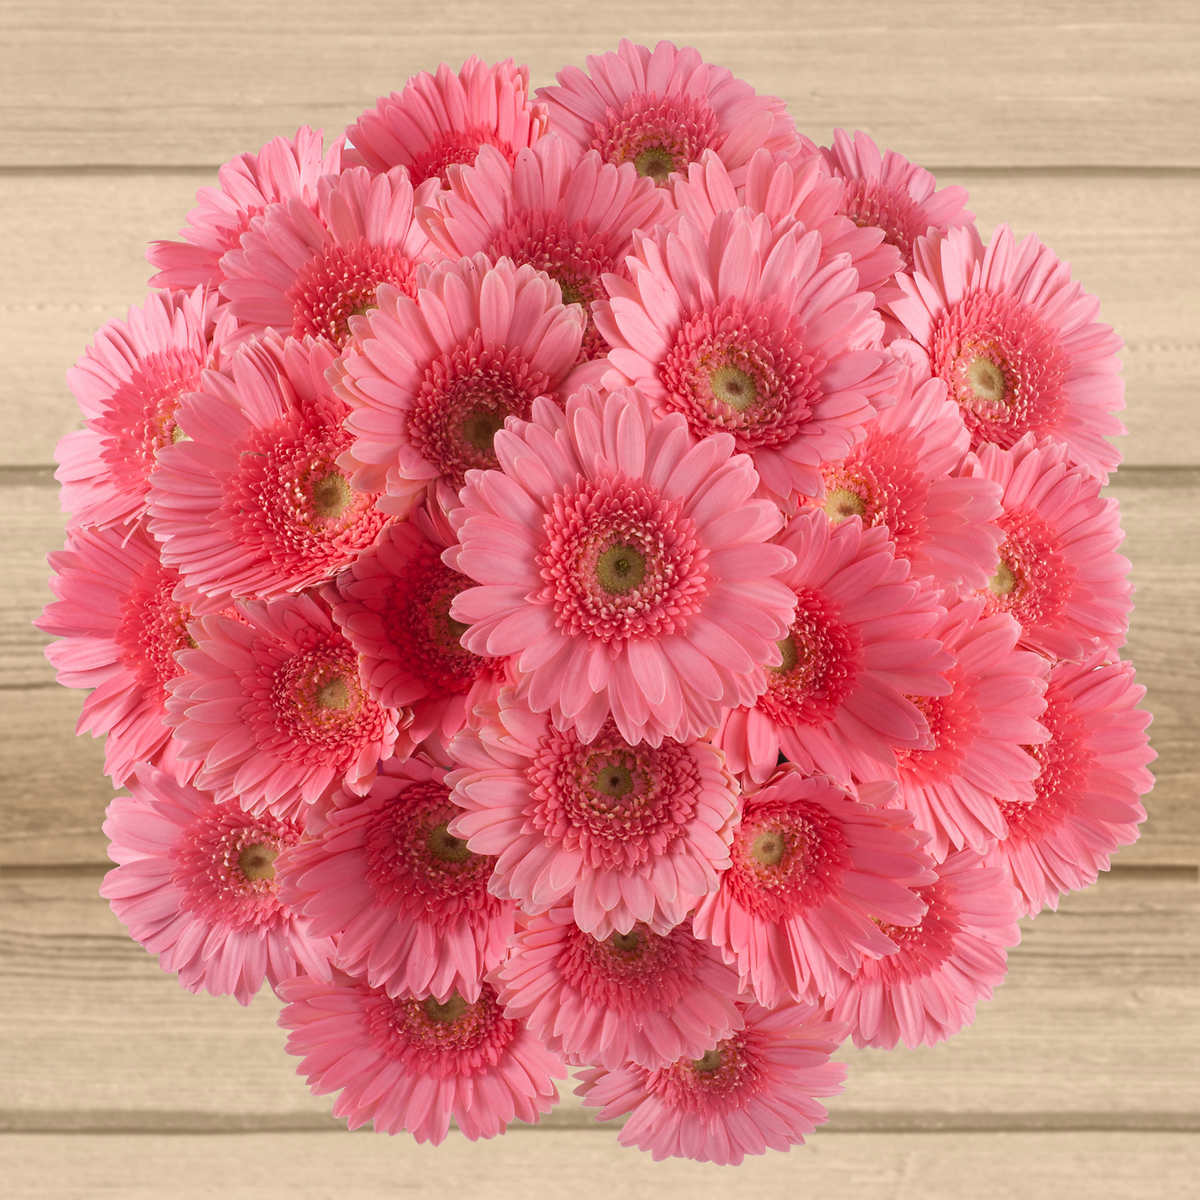 Solid Color Gerbera Daisy - 80 Stems